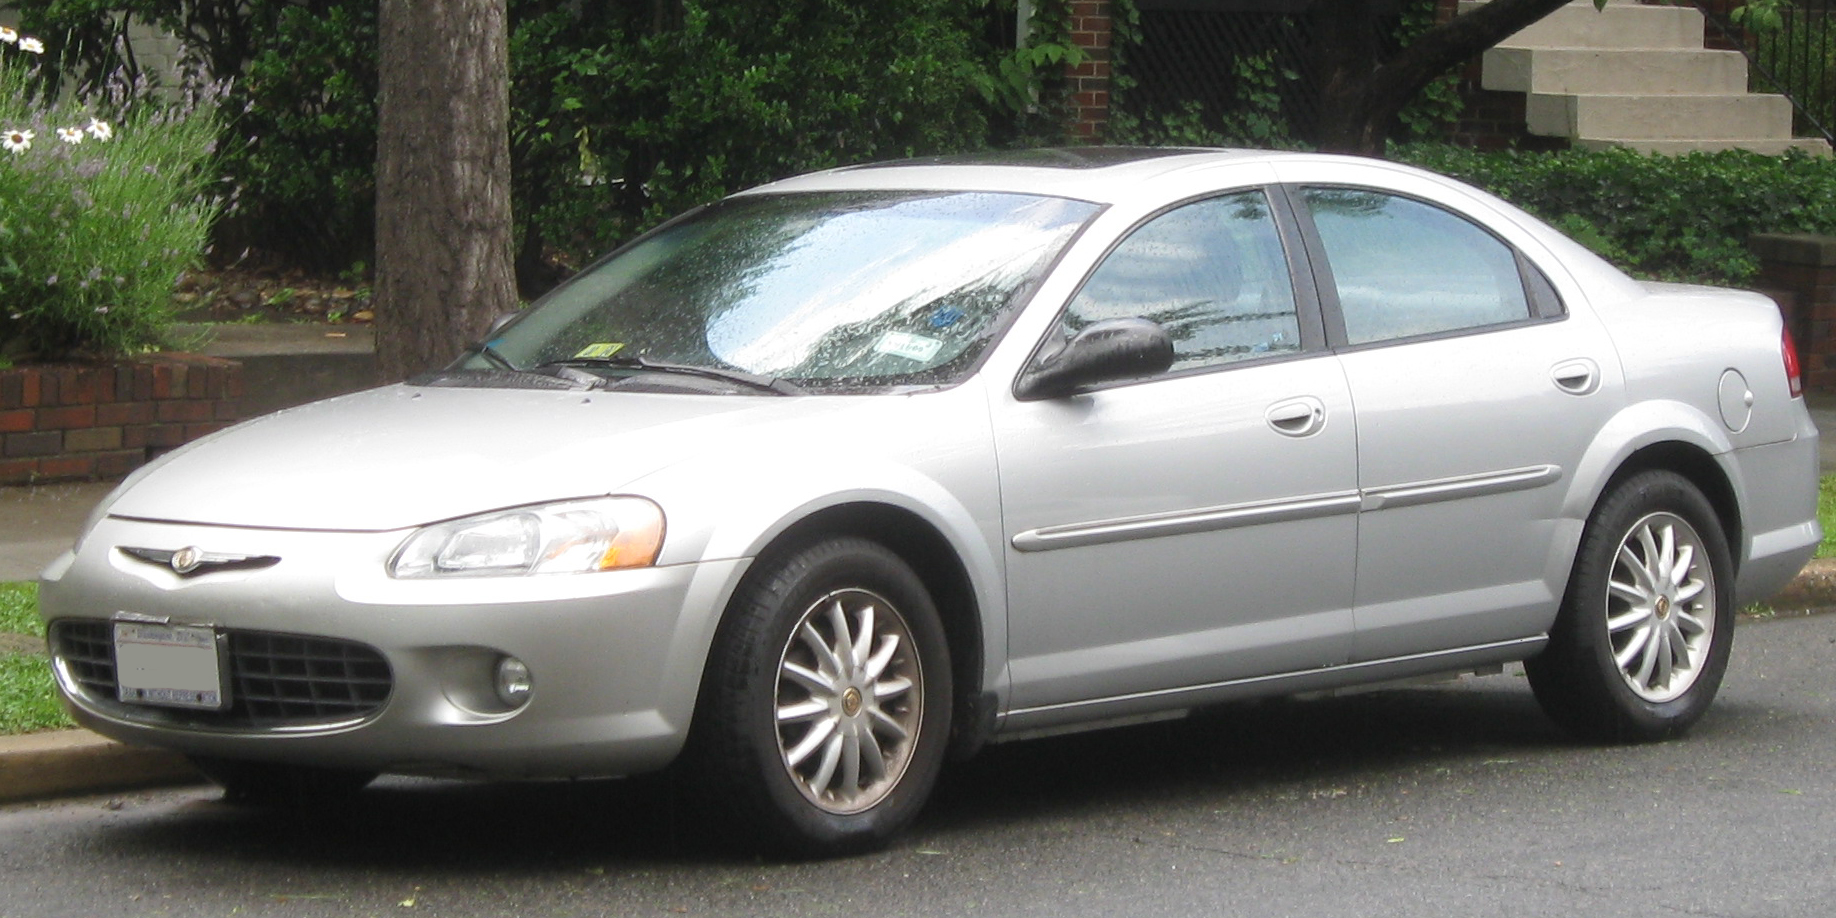 2001 Chrysler Sebring Information And Photos Momentcar